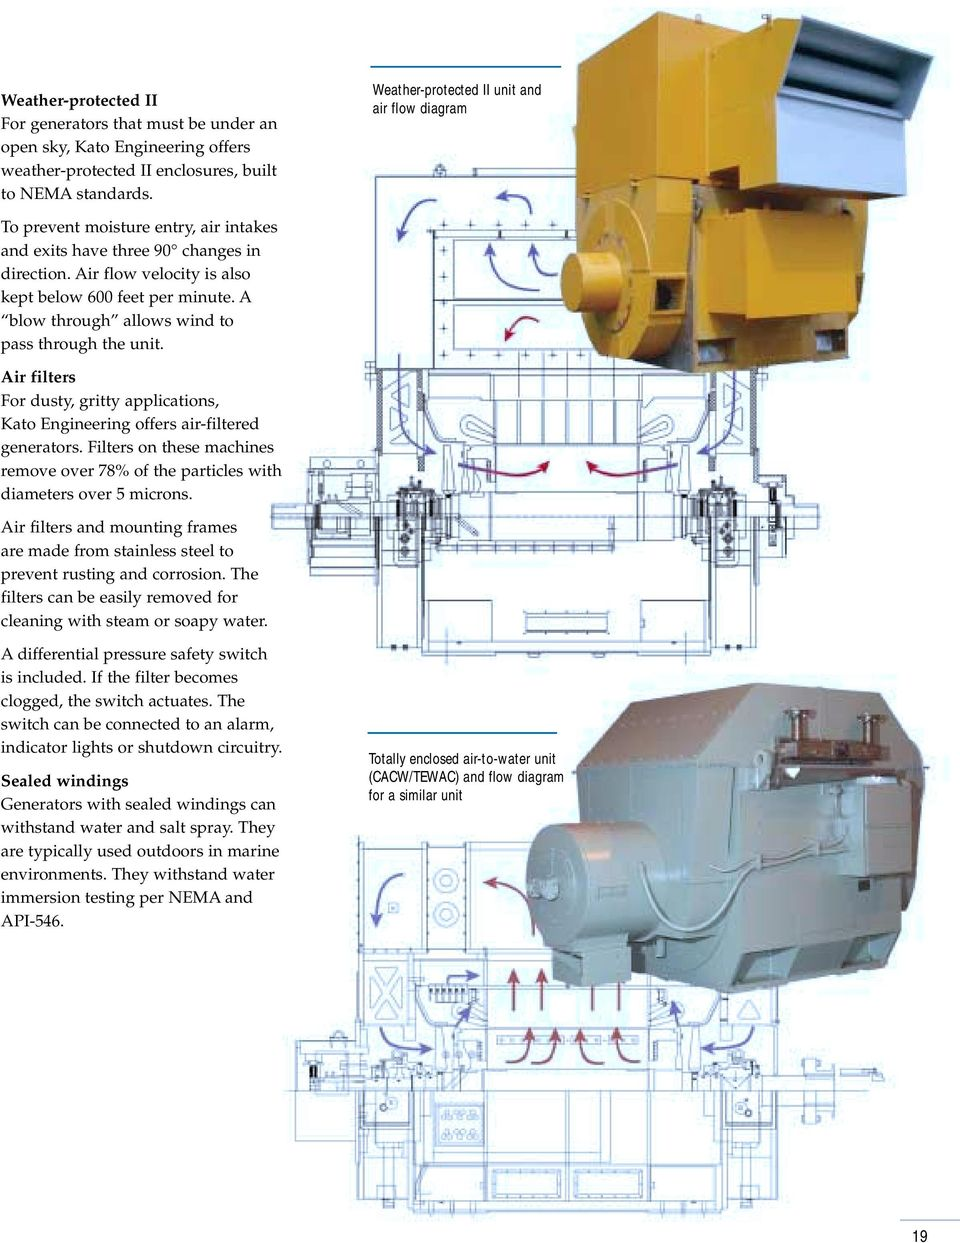 Kato Engineering Generators Motor Generator Sets Controls Leroy Flow Diagram Besides Gas Forced Air Furnace On For A Similar Unit 19 Blow Through Allows Wind To Pass The Filters Dusty